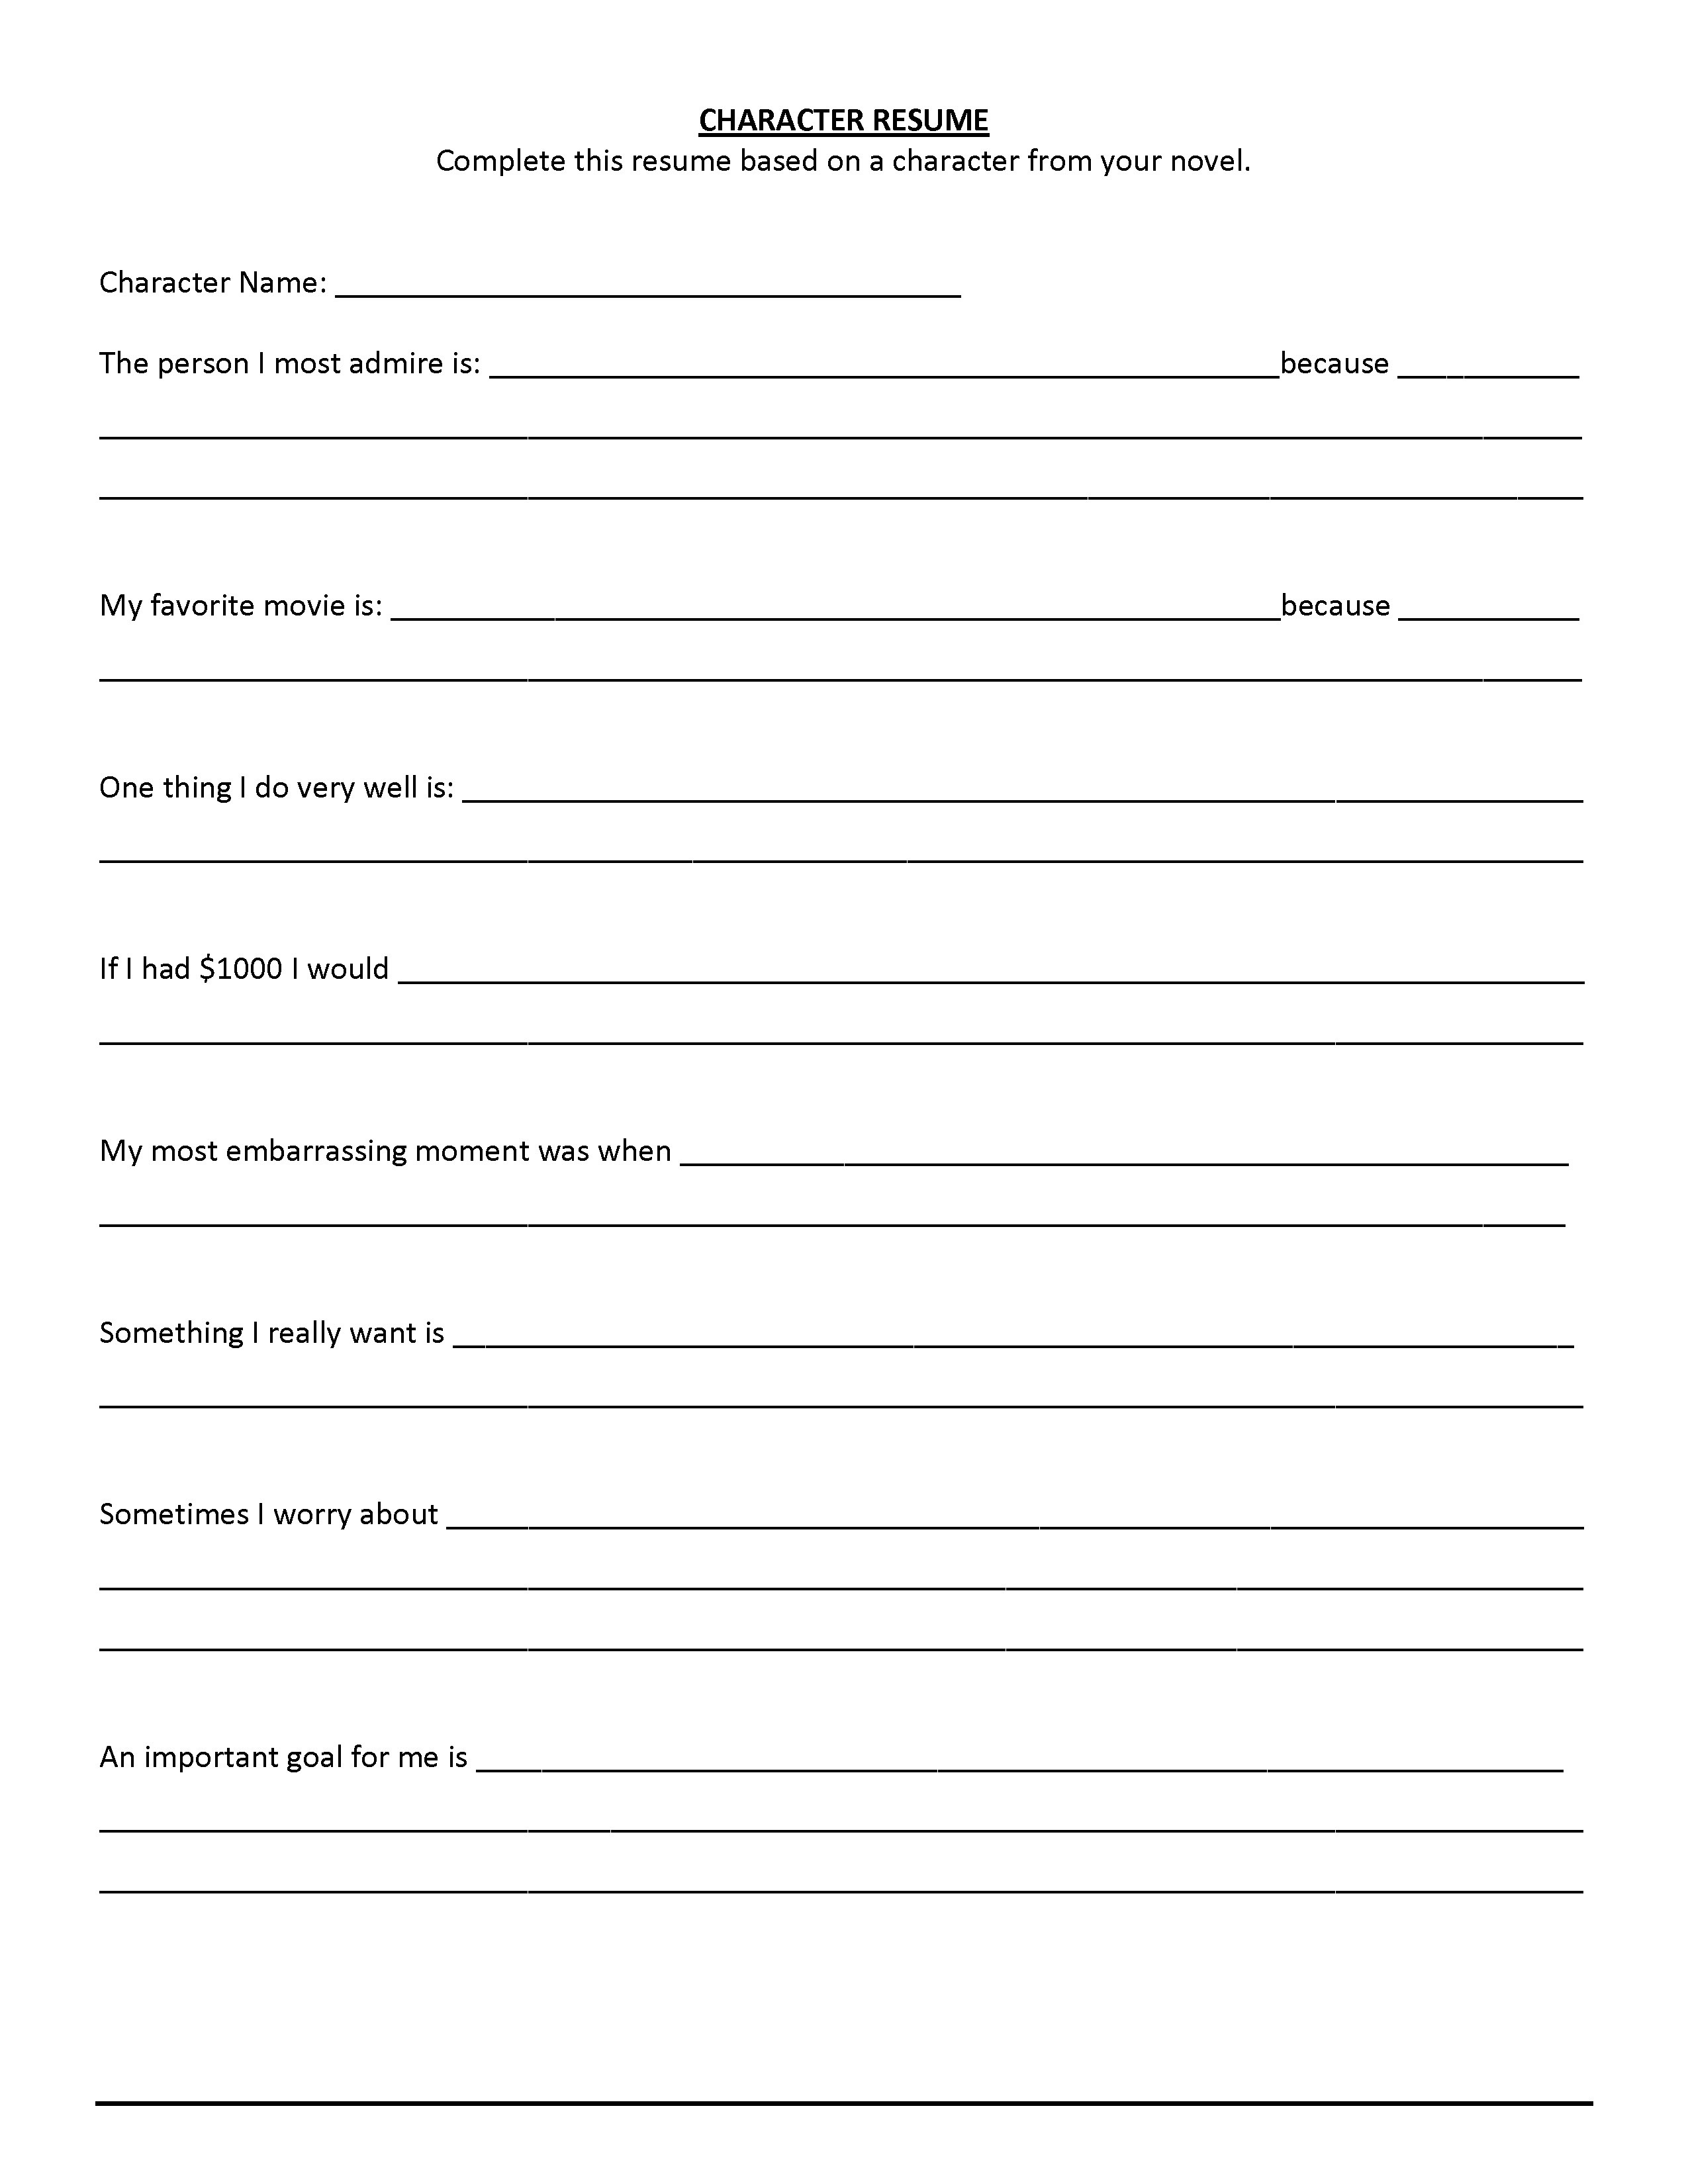 Free Printable Fill In The Blank Resume Templates | | Business - Free Printable Fill In The Blank Resume Templates